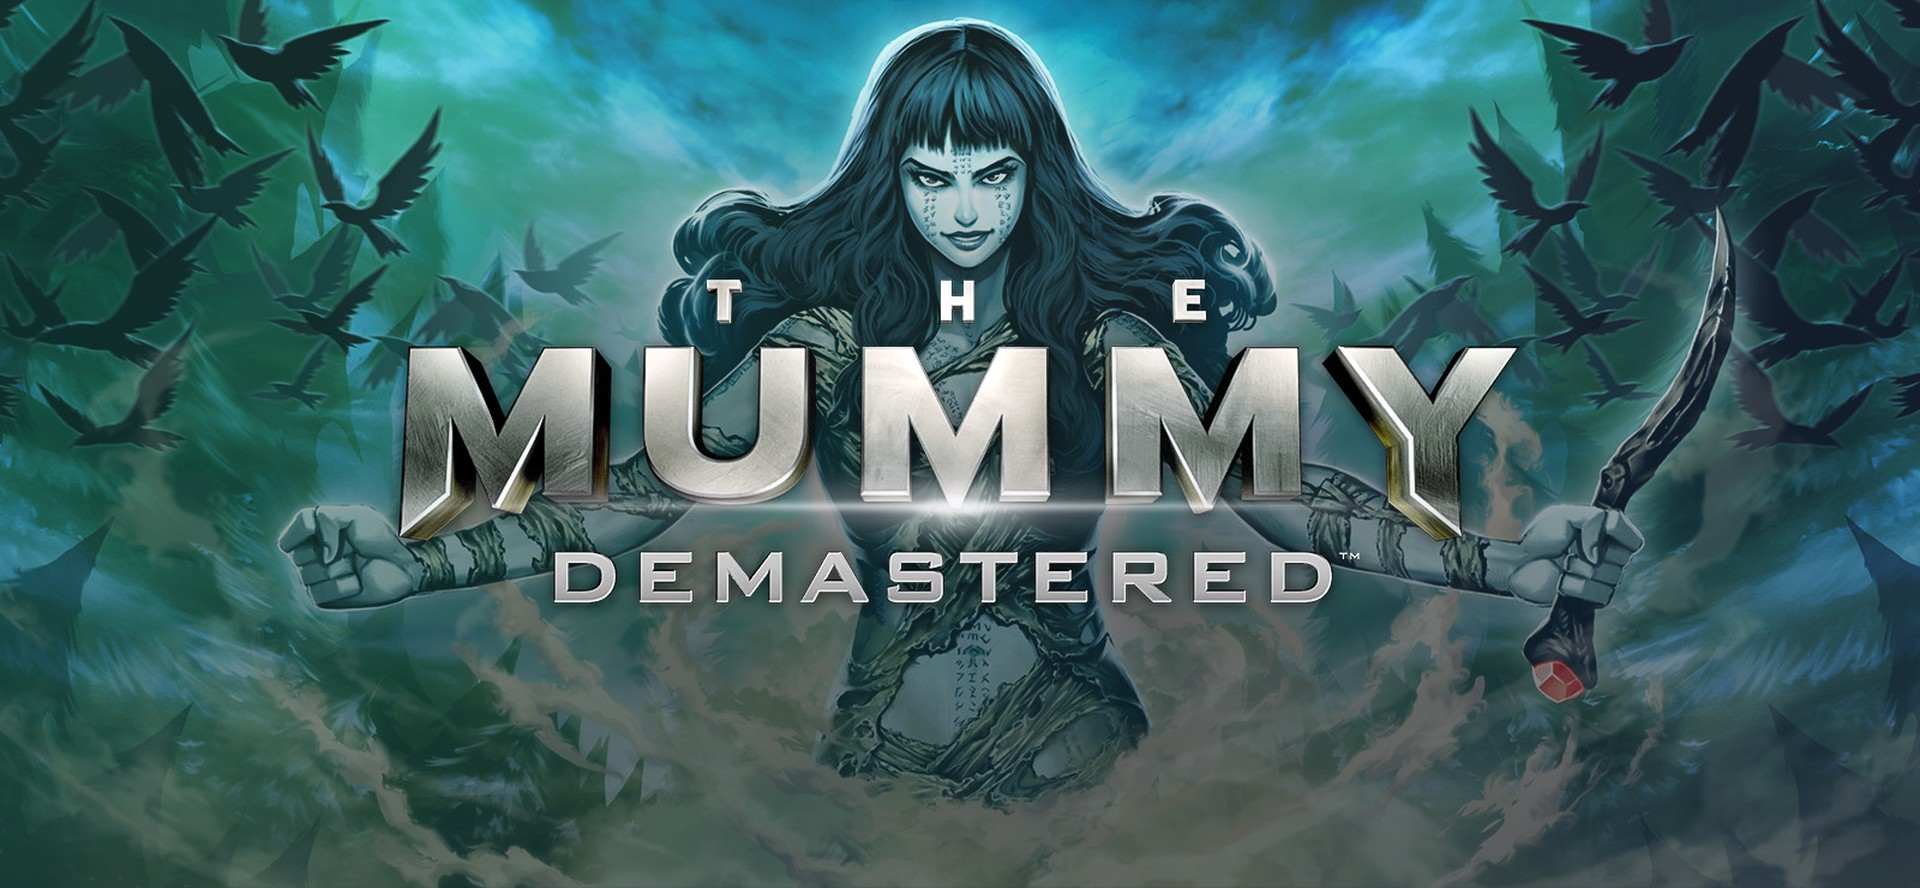 The Mummy Demastered Video